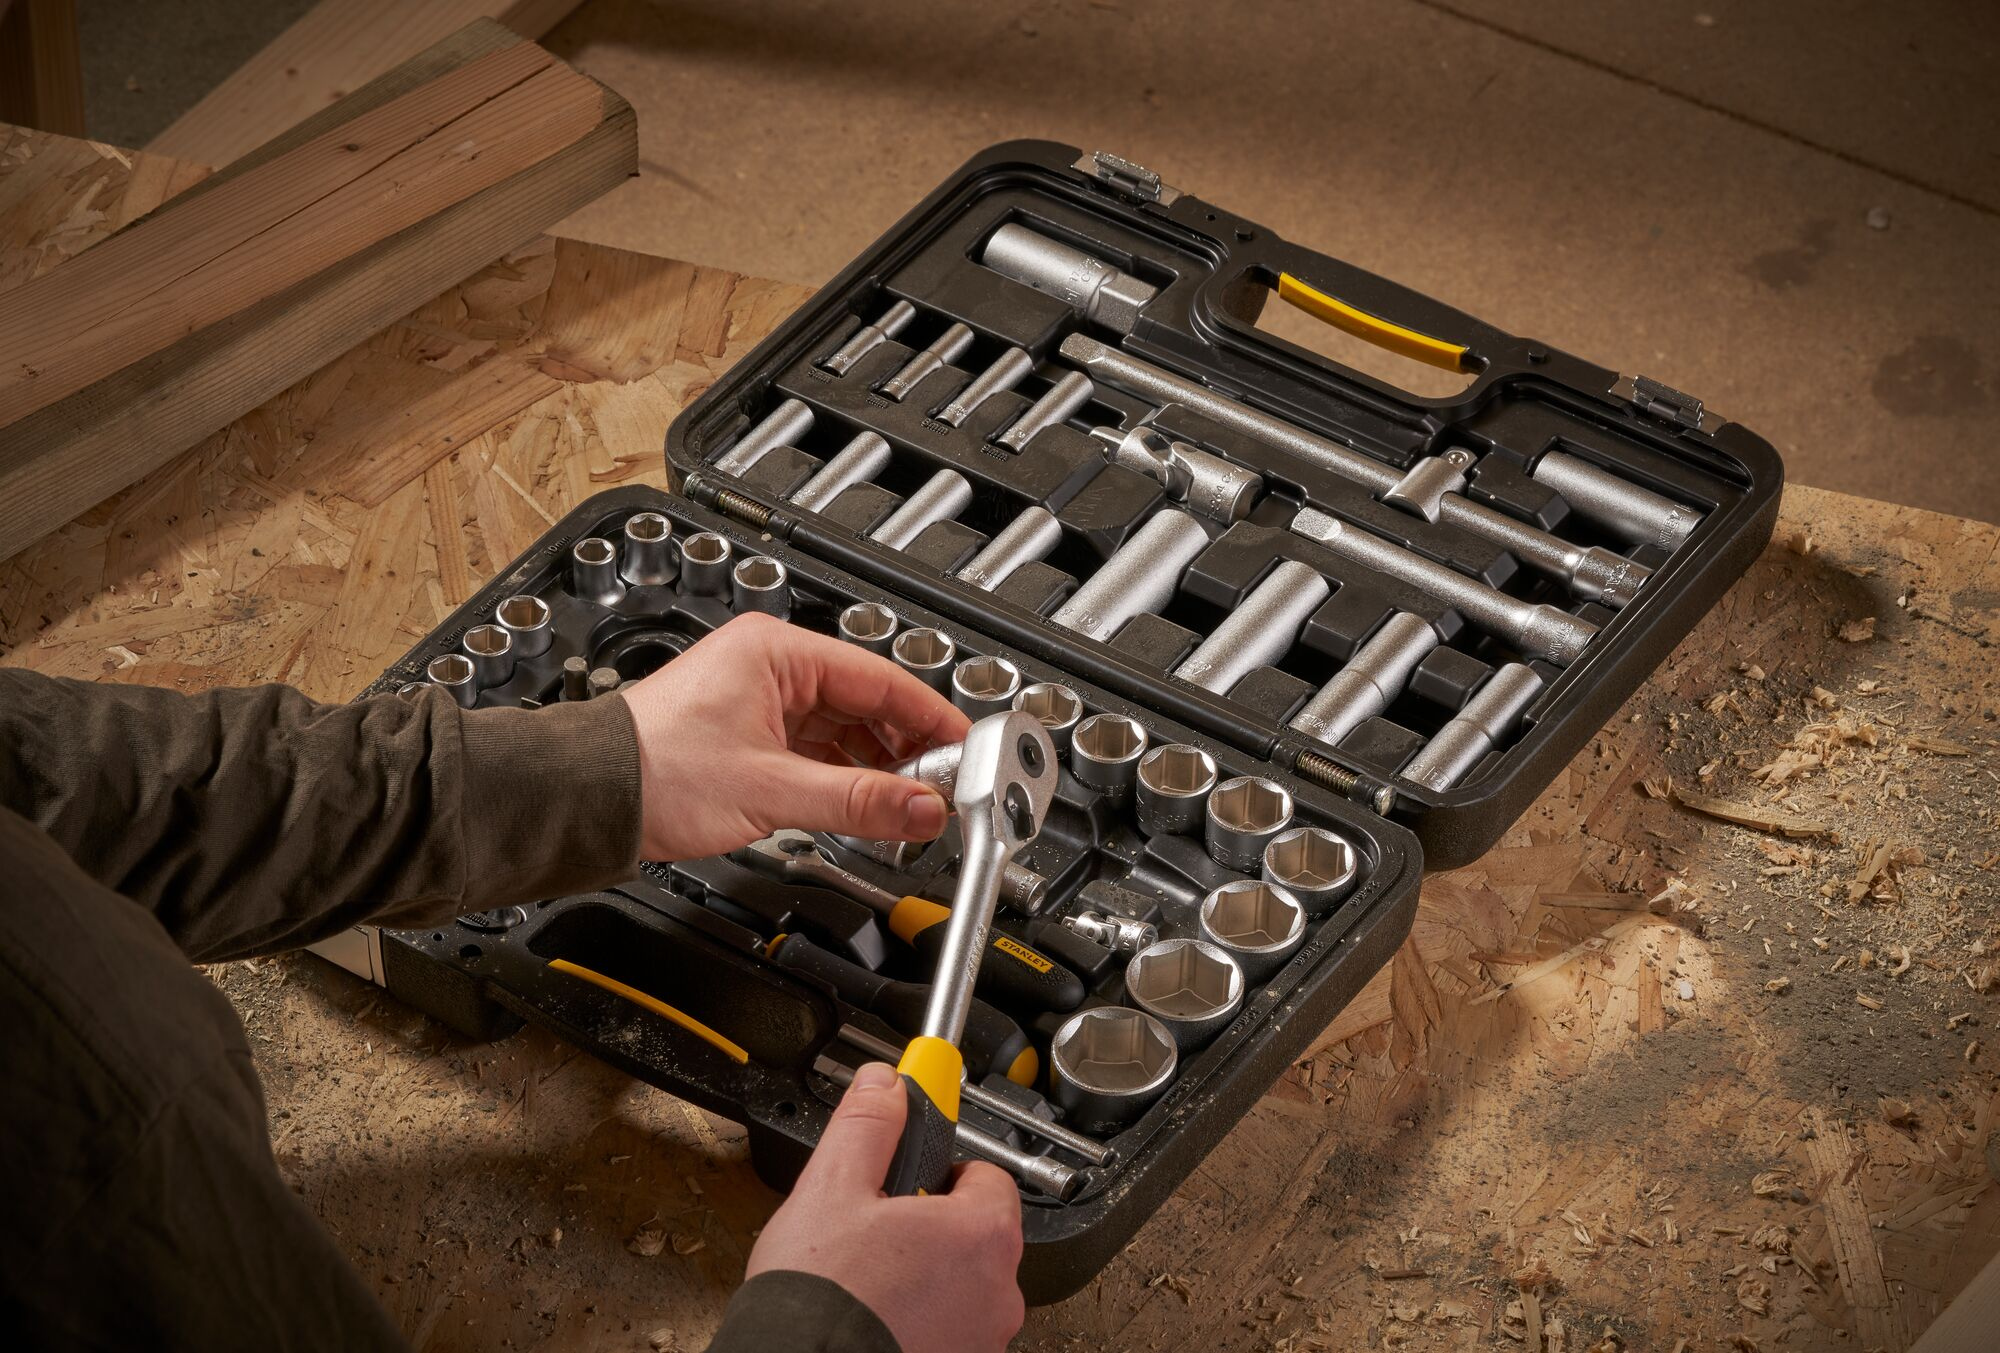 """STANLEY® 1/4"""" and 1/2"""""""" 72 Tooth Ratchets and Socket Set with accessories (96 pieces)"""""""